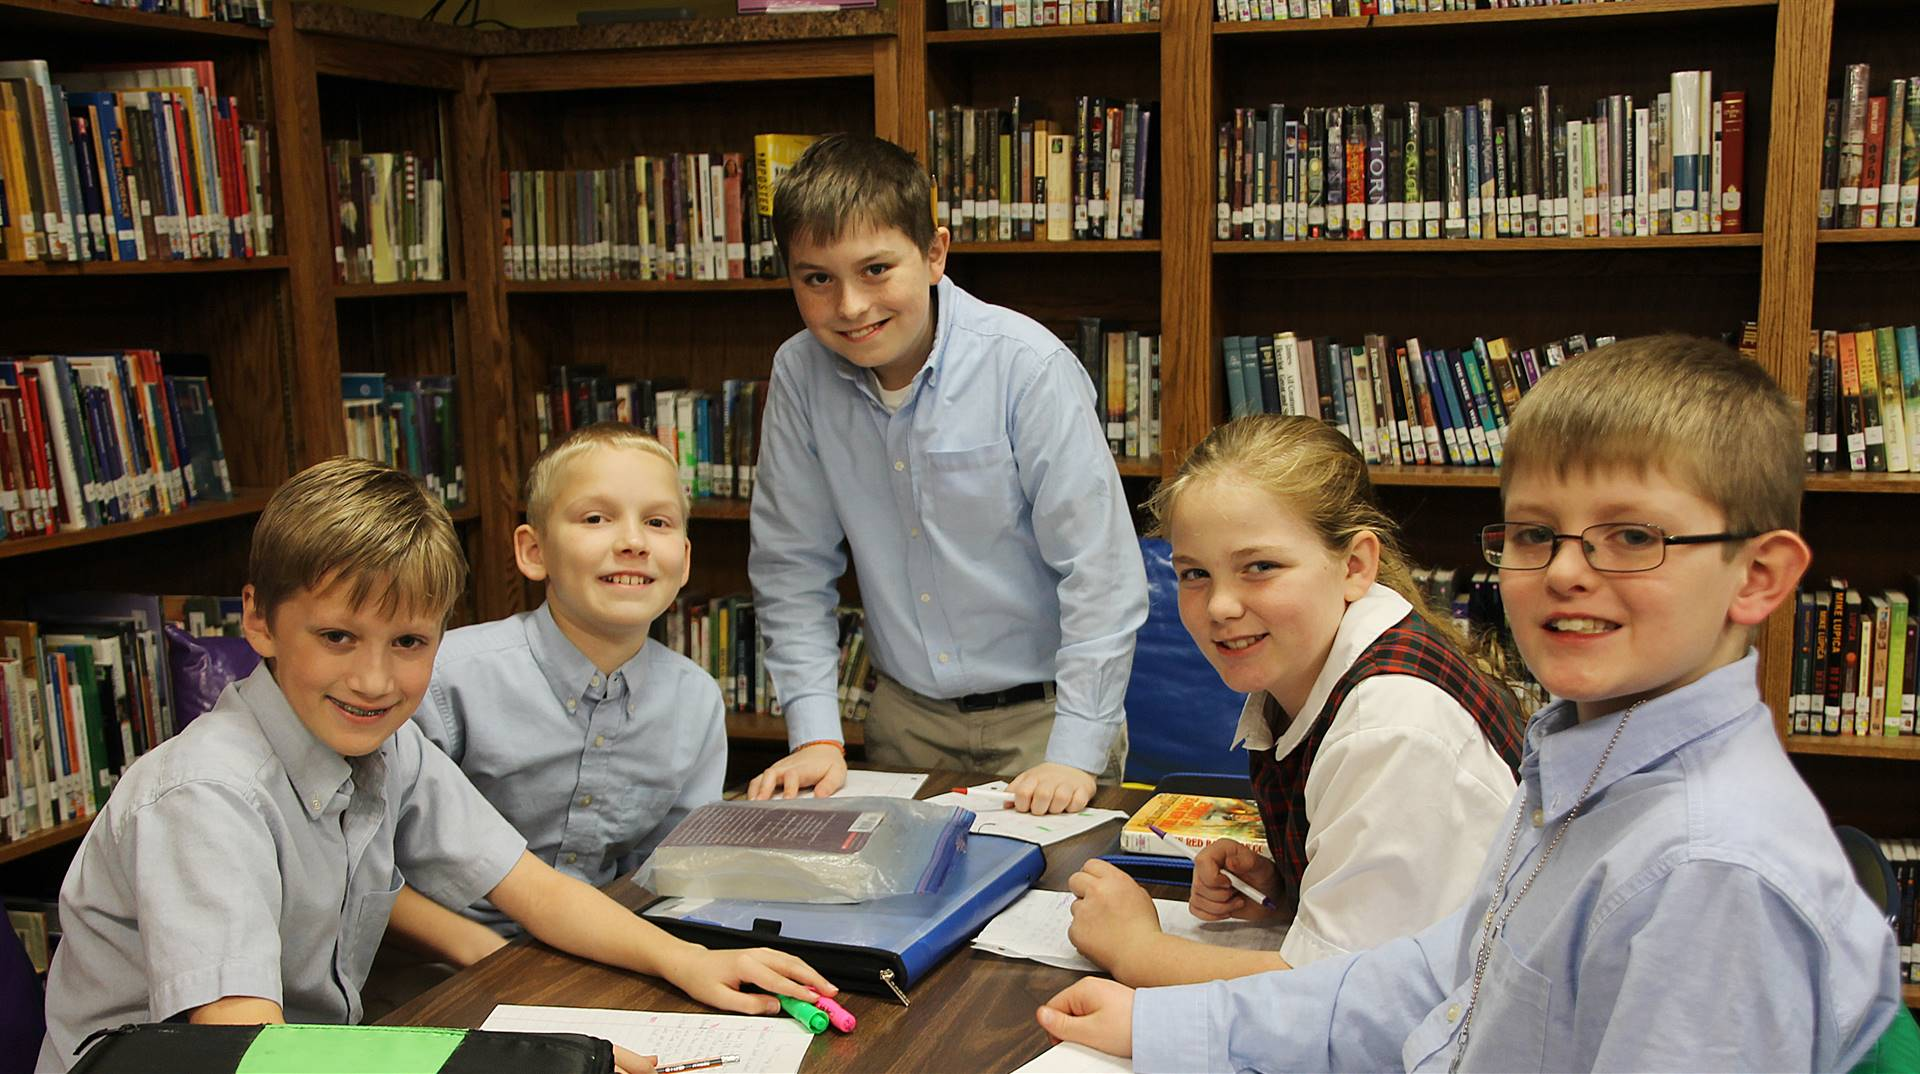 Students in the FCA Library